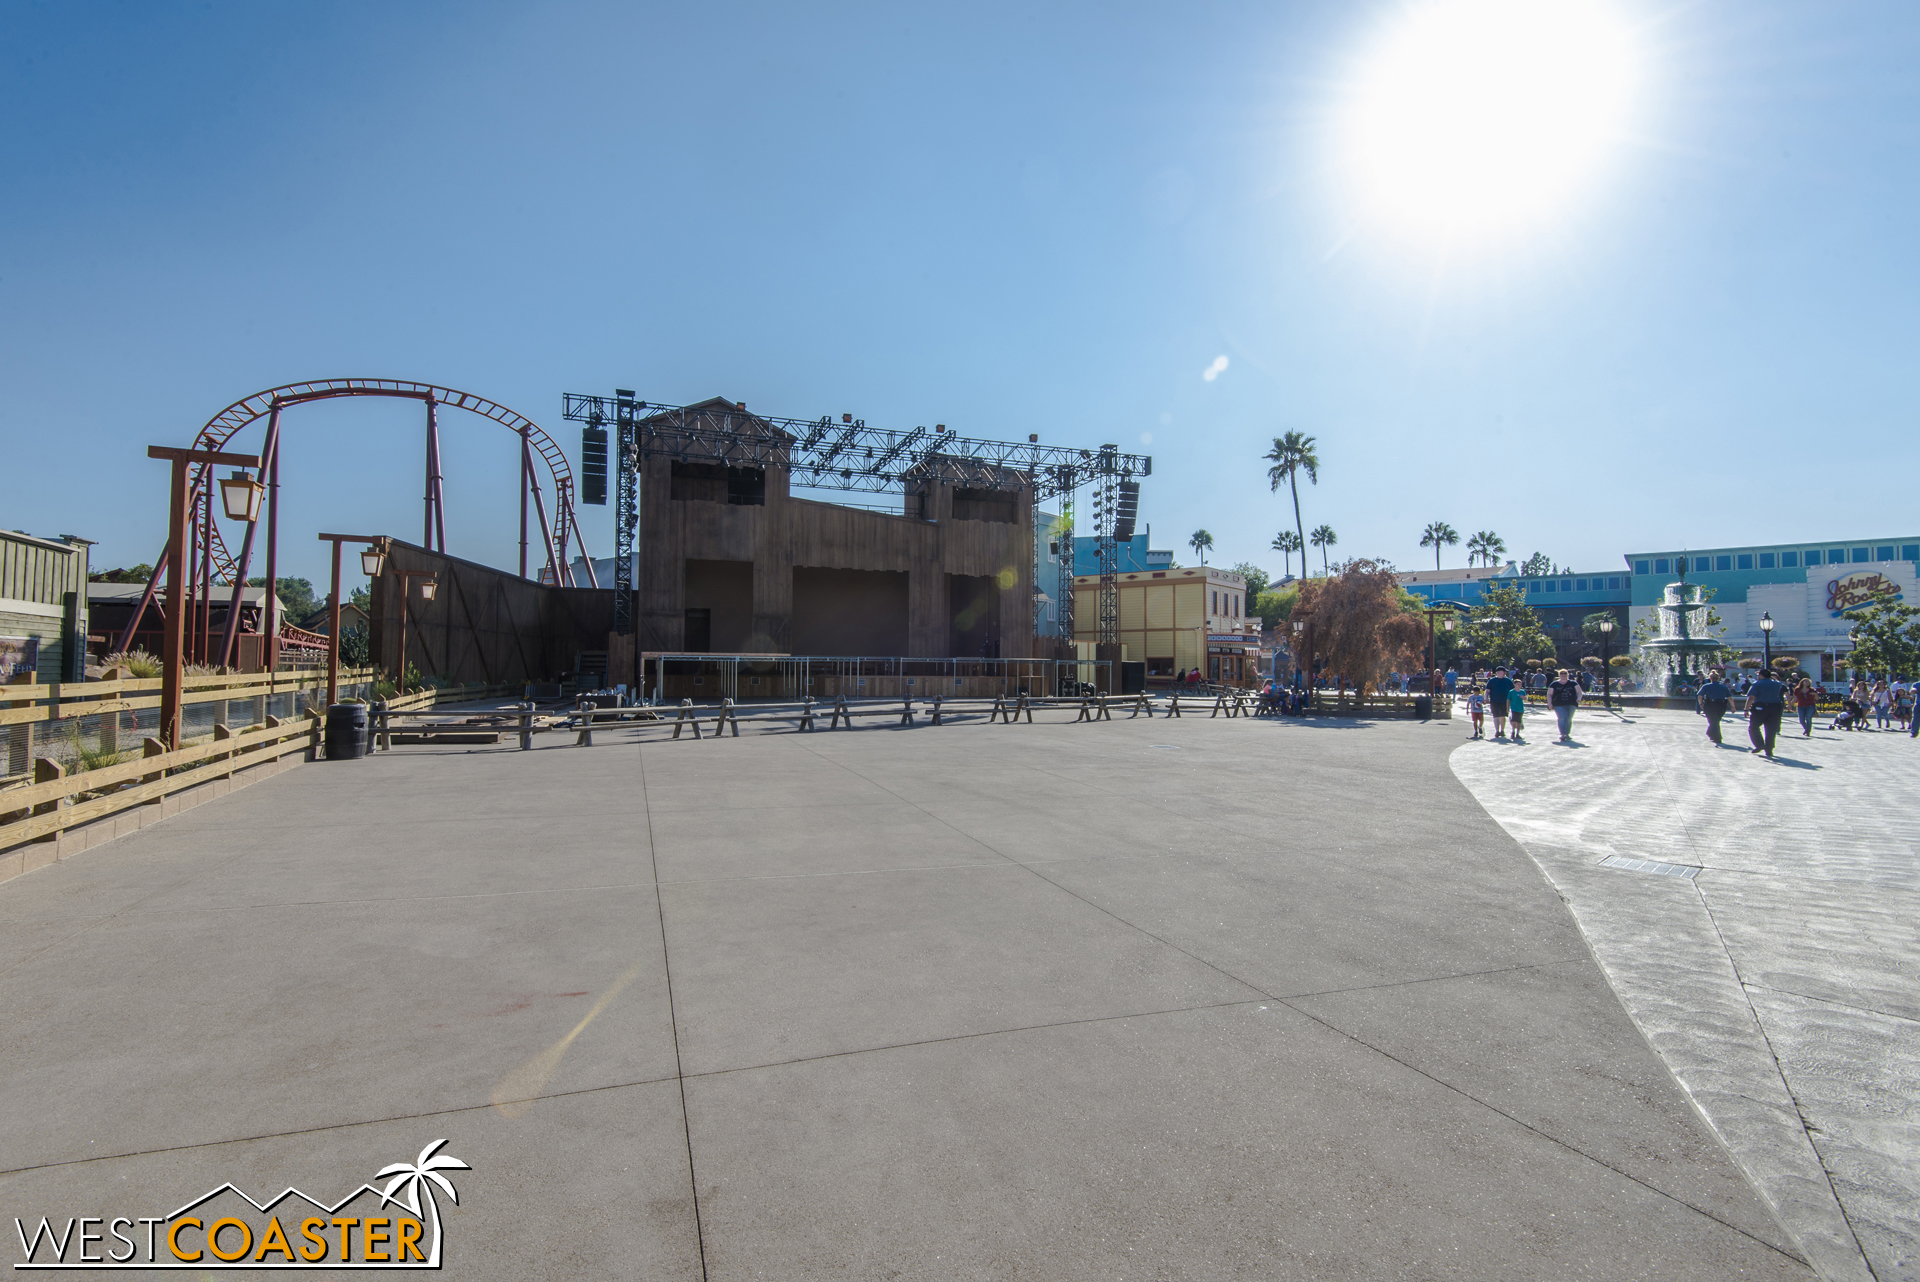 There it is. The new stage is by the first turnaround of Pony Express.